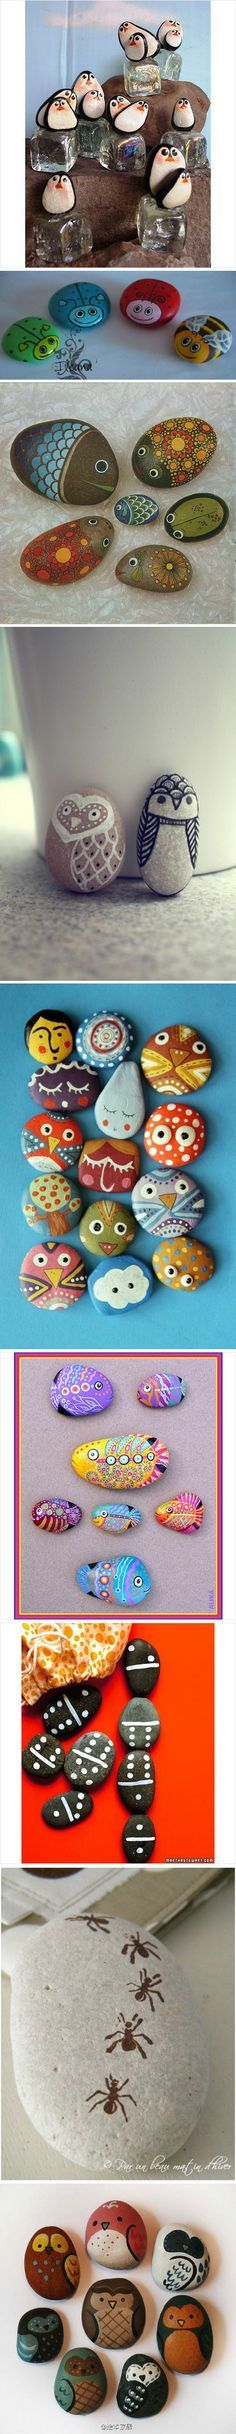 Penguin rock !! Under the tree - on the mantel - in the window !! OR - painted pebbles: would look great in the flower beds.